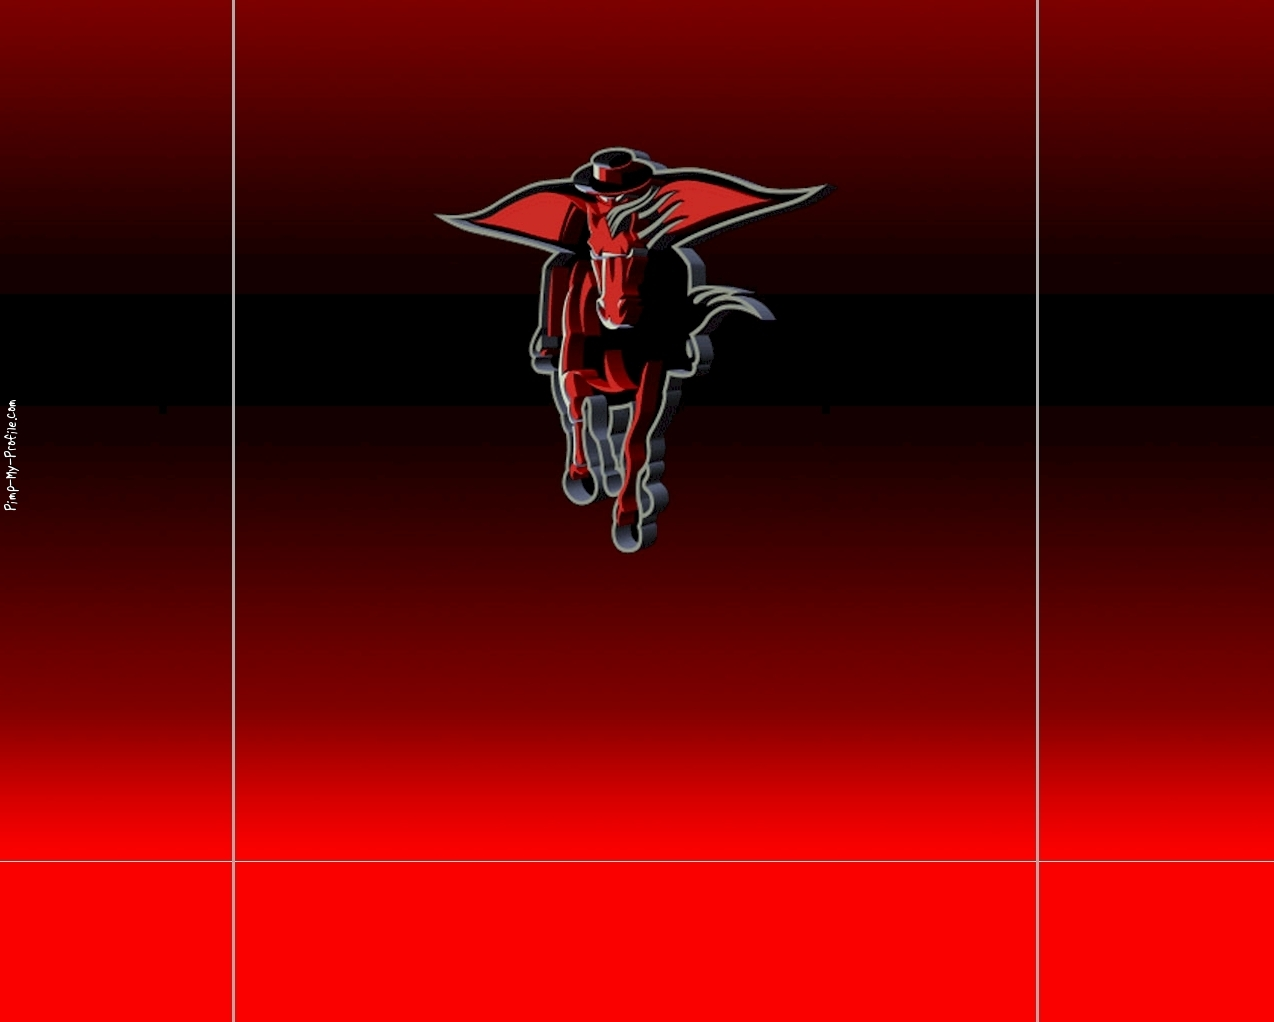 Texas Tech Twitter Backgrounds   Pimp My Profilecom 1274x1022